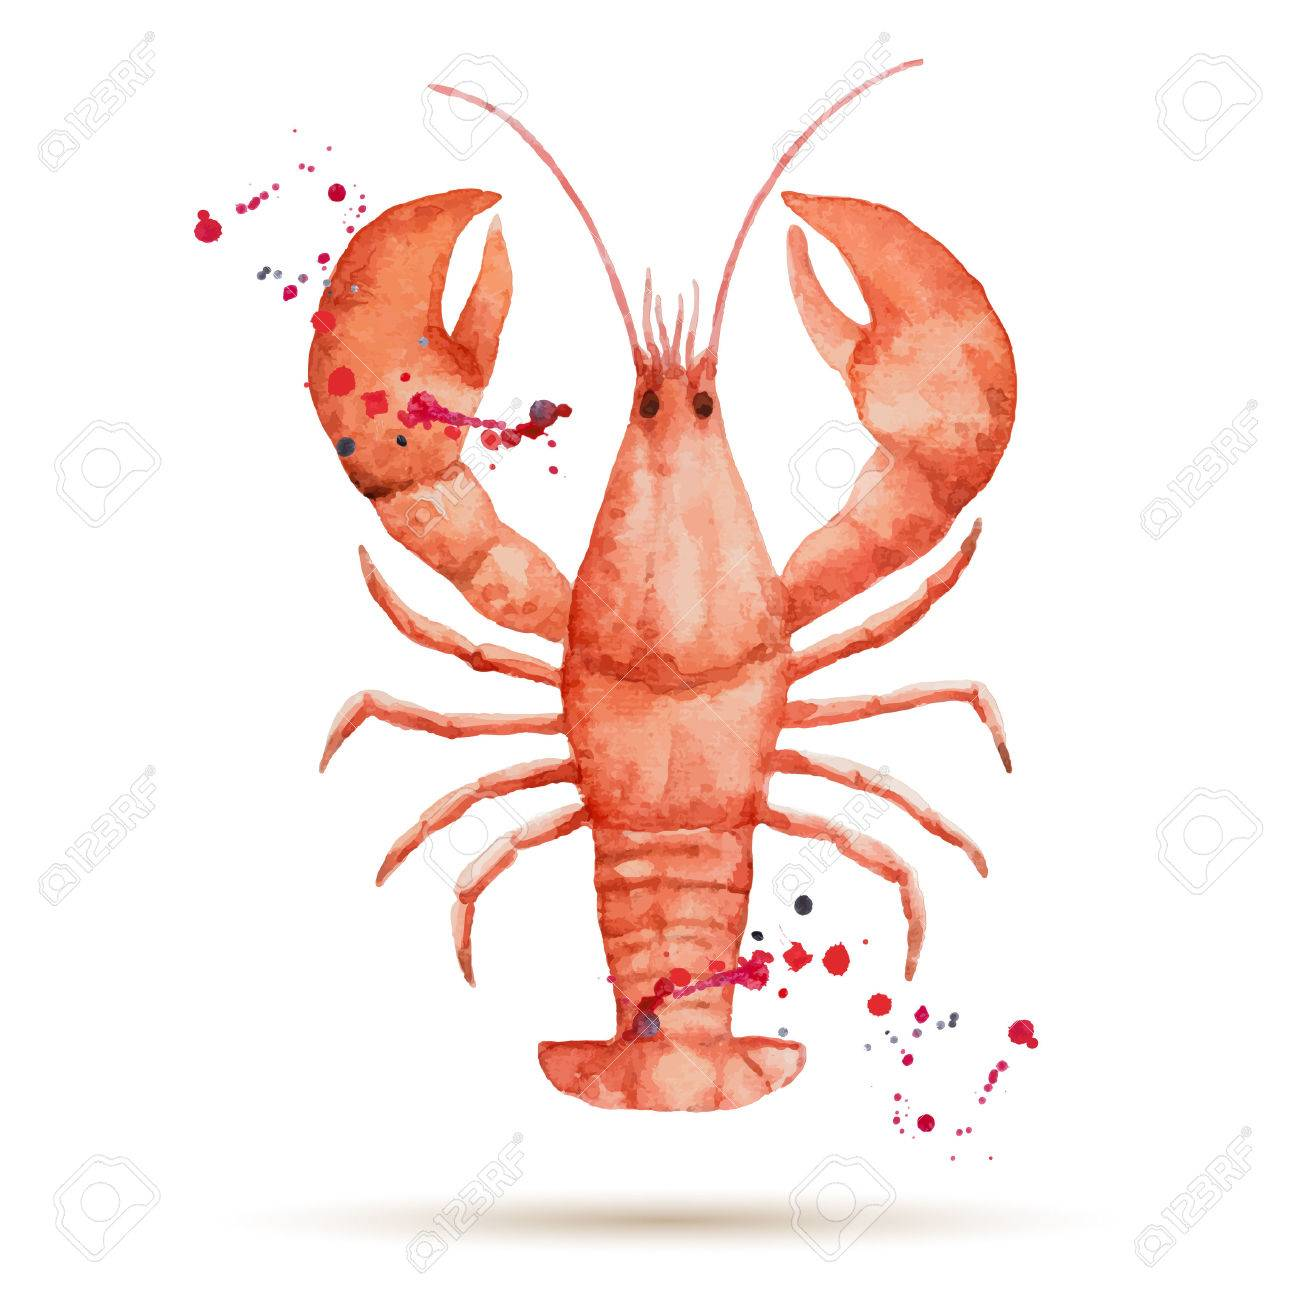 hight resolution of watercolor lobster fresh organic seafood vector illustration stock vector 39085504